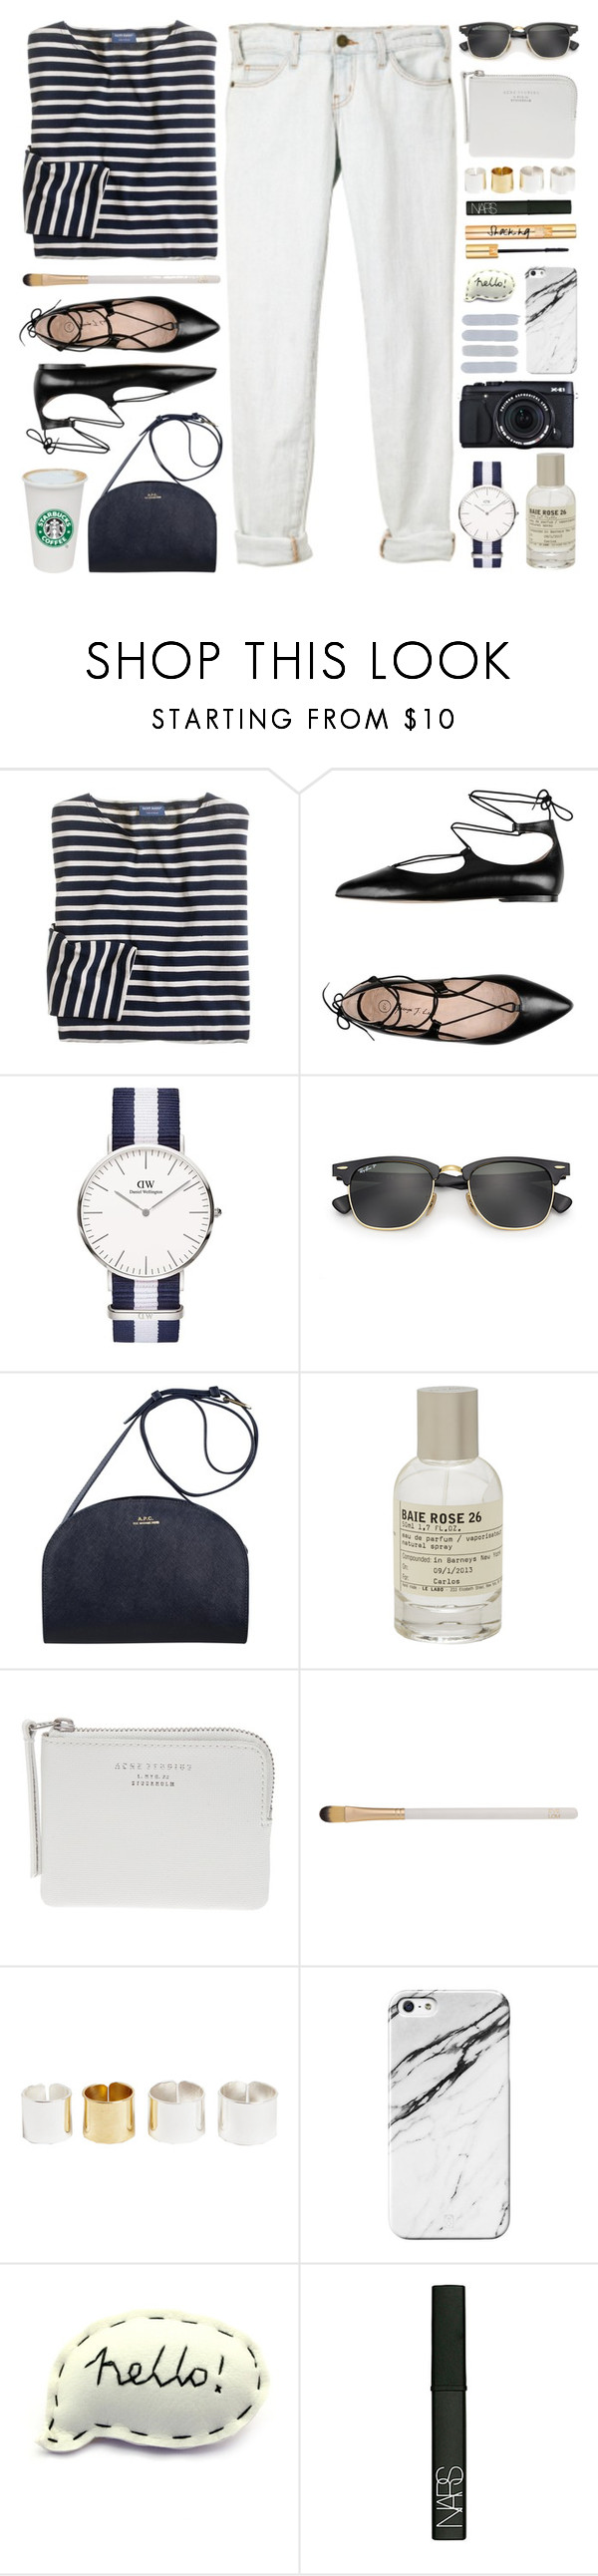 """""""Every time that you're feeling low, you should know I'll be there for you"""" by steffywhoelse ❤ liked on Polyvore featuring J.Crew, Current/Elliott, George J. Love, Ray-Ban, Le Labo, Acne Studios, Eve Lom, Dries Van Noten, Fujifilm and NARS Cosmetics"""